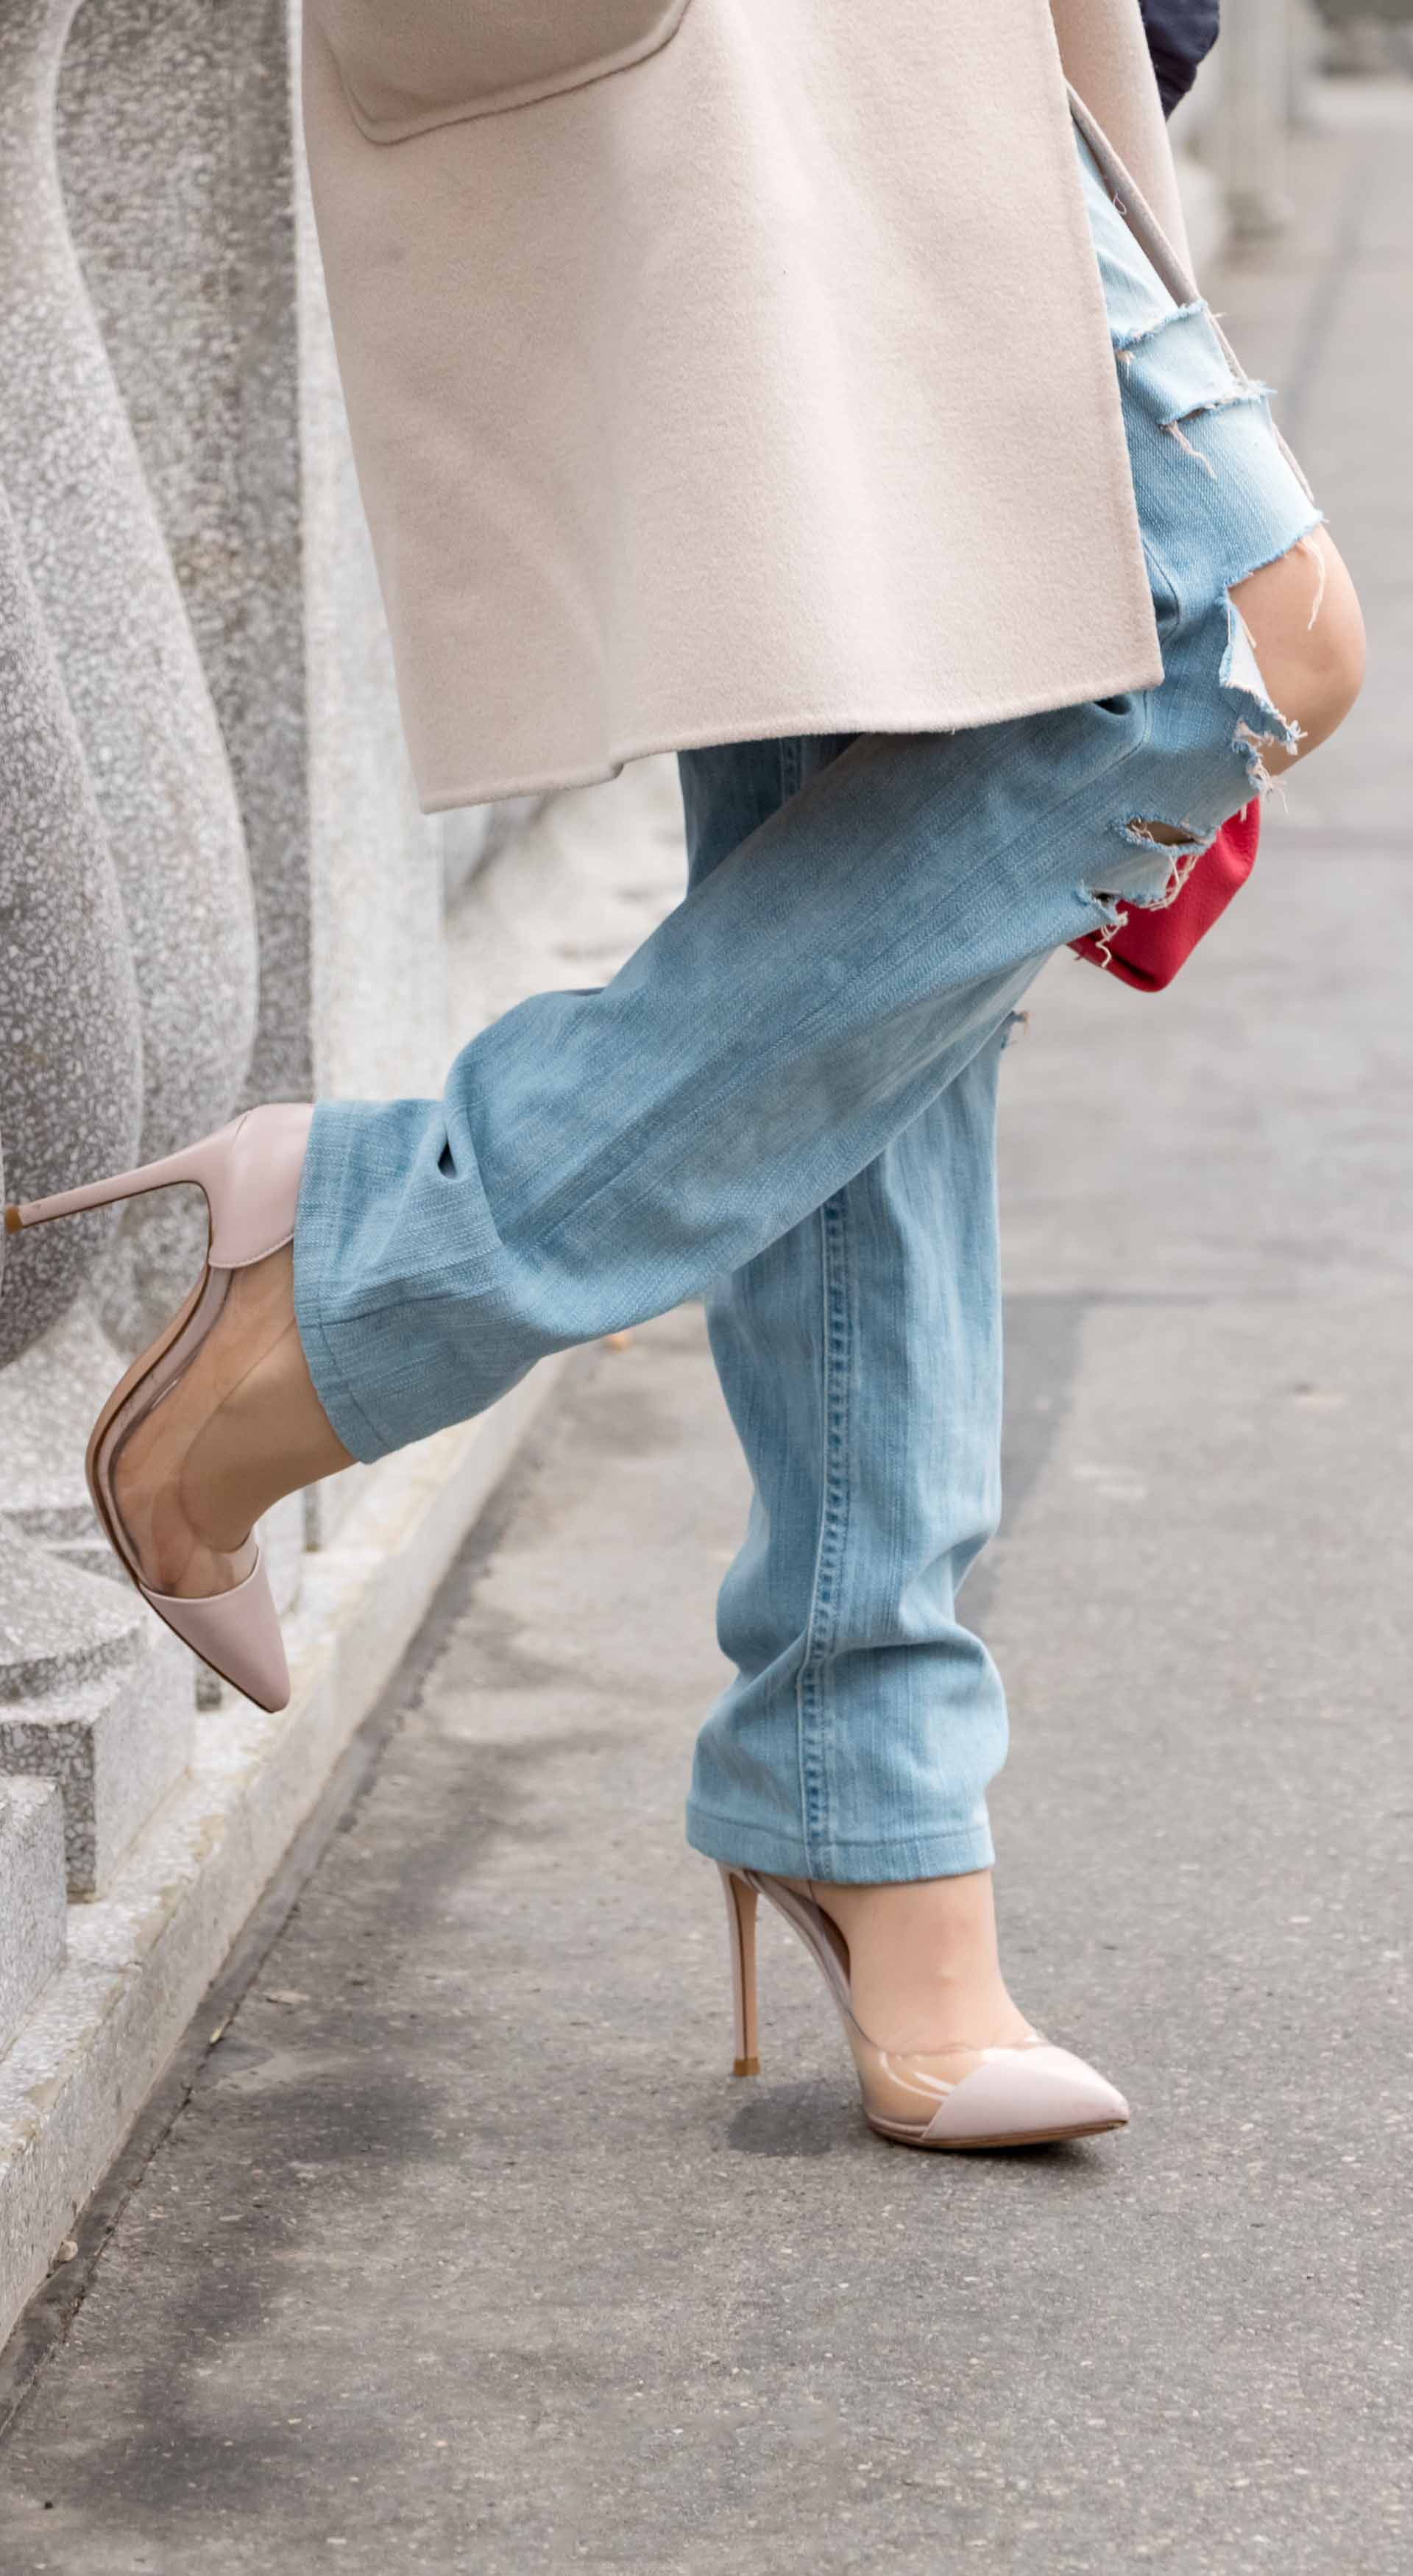 Fashion Blogger Veronika Lipar of Brunette from Wall Street wearing distressed blue Levi's jeans, off-white double breasted Weekend Maxmara coat, blush Gianvito Rossi plexi pumps